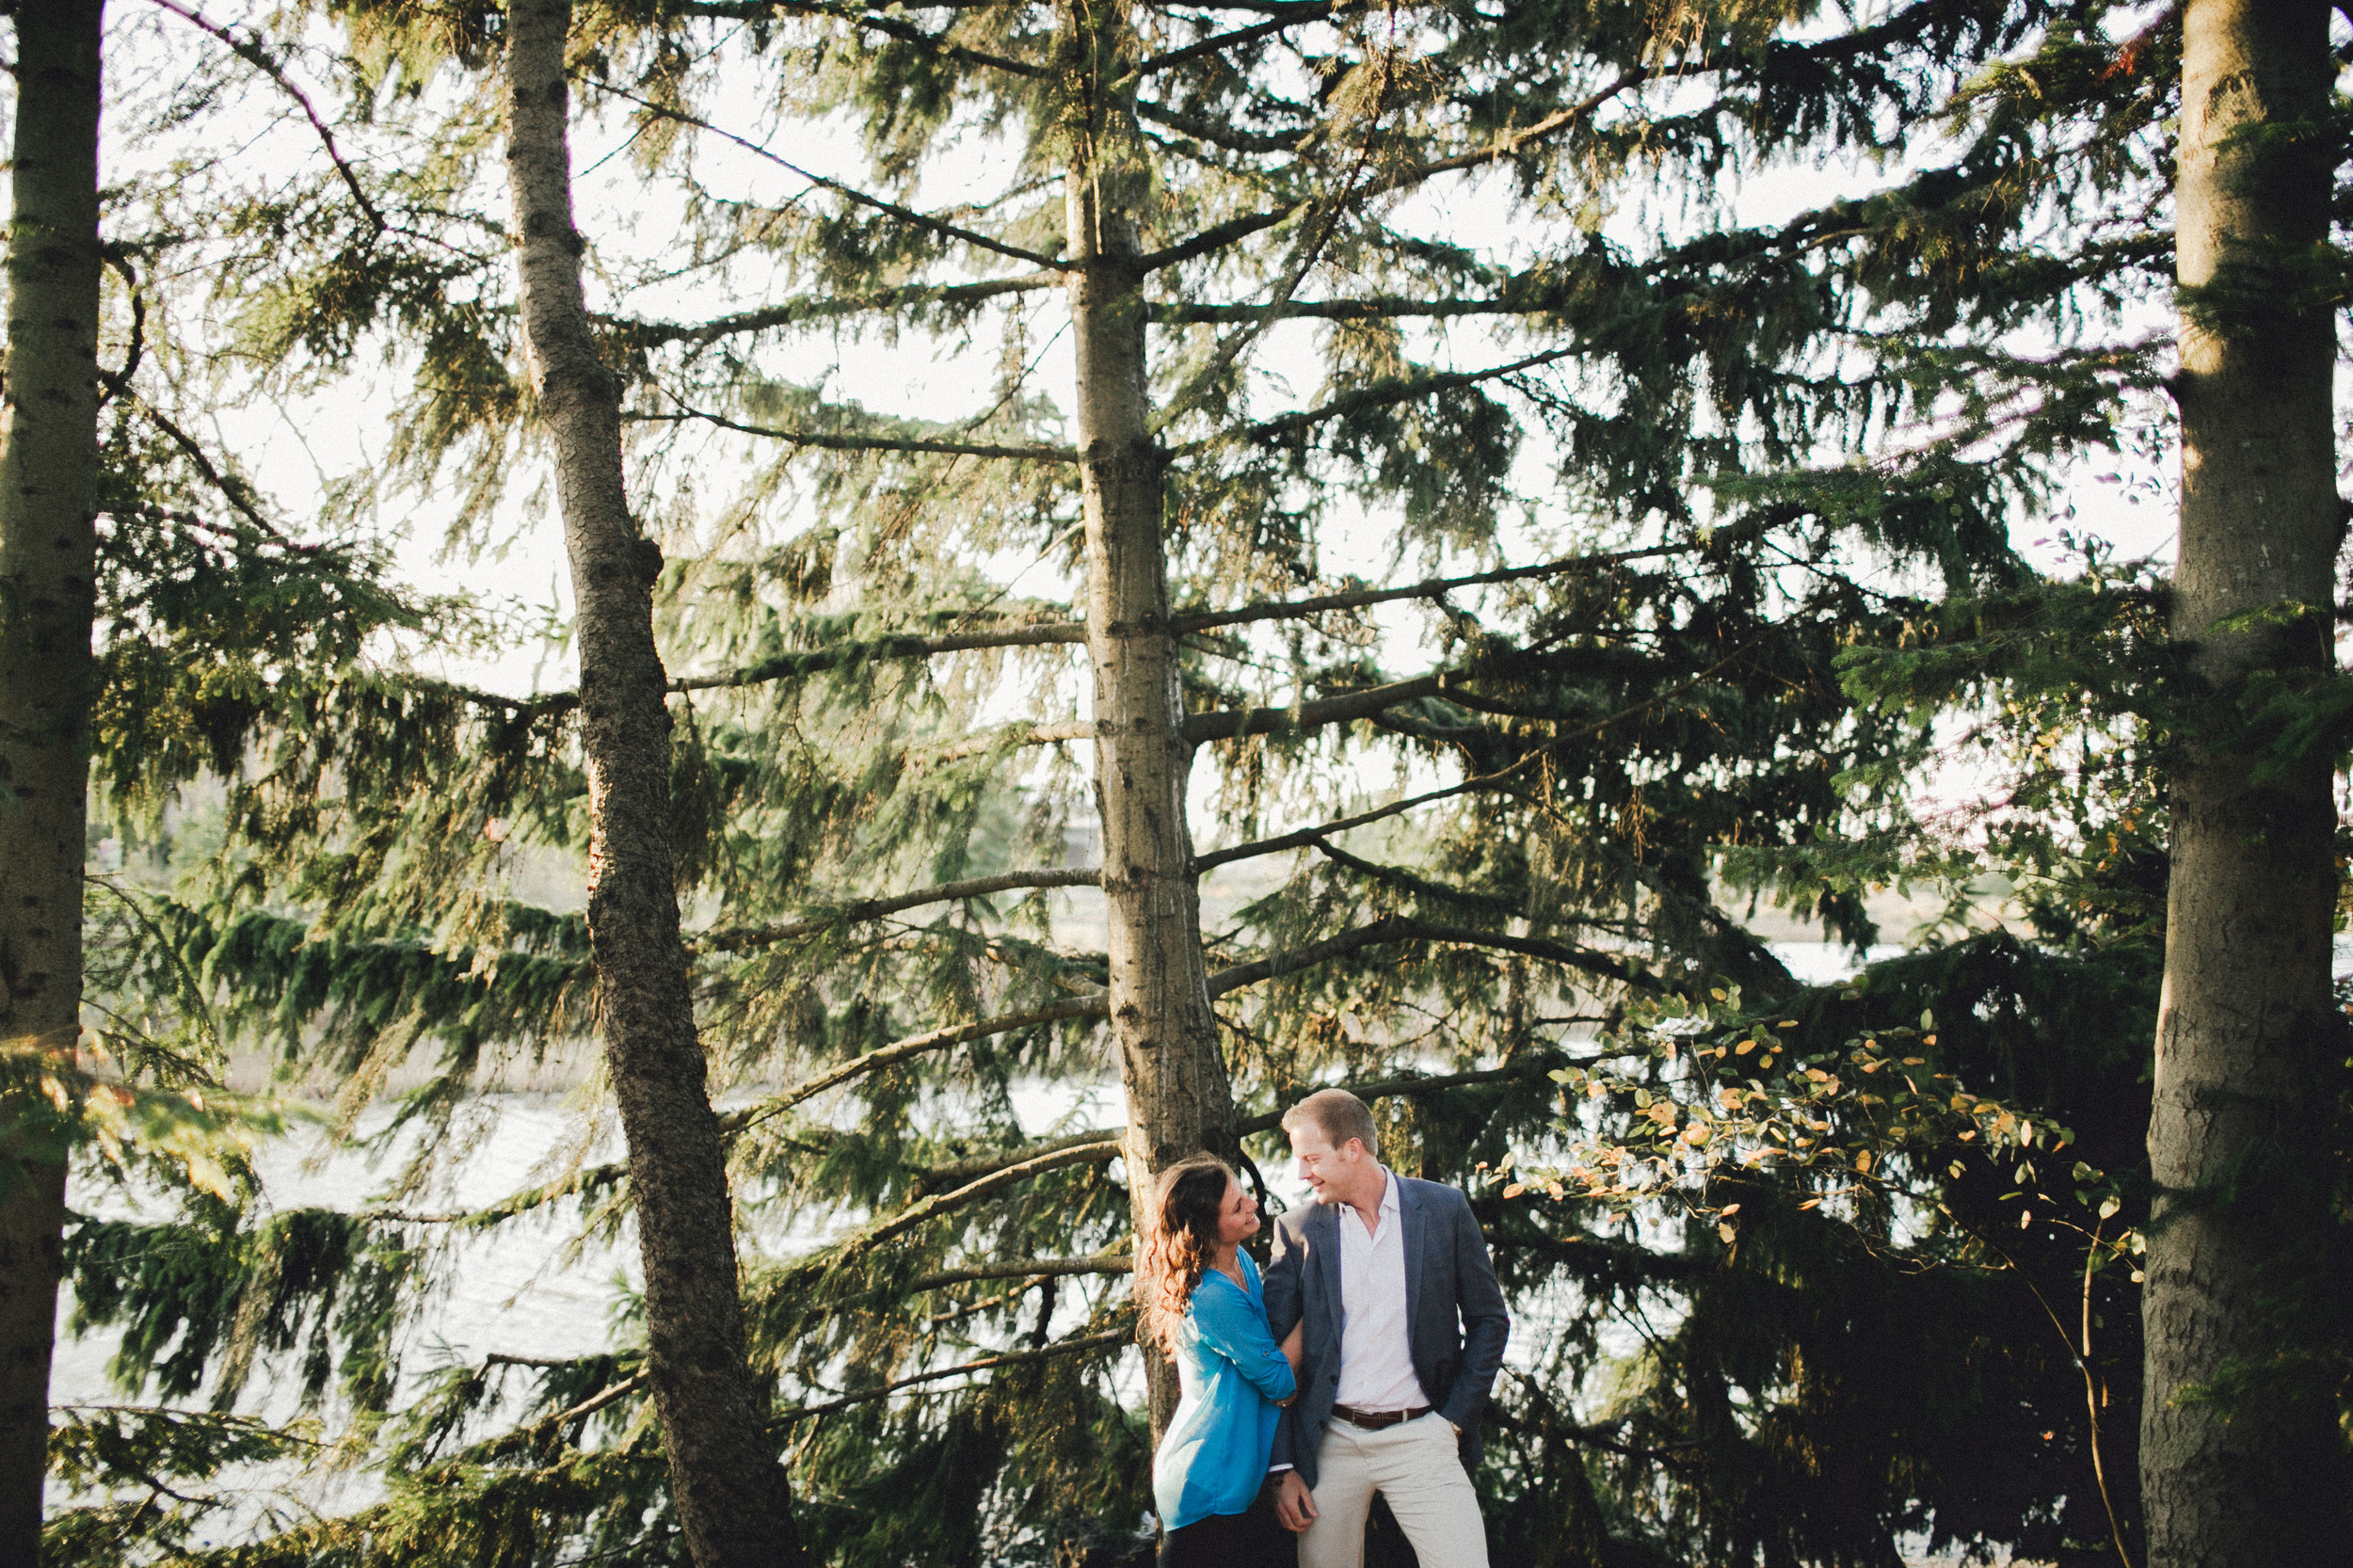 mayden photography_chicago botanical gardens engagement photo-18.jpg